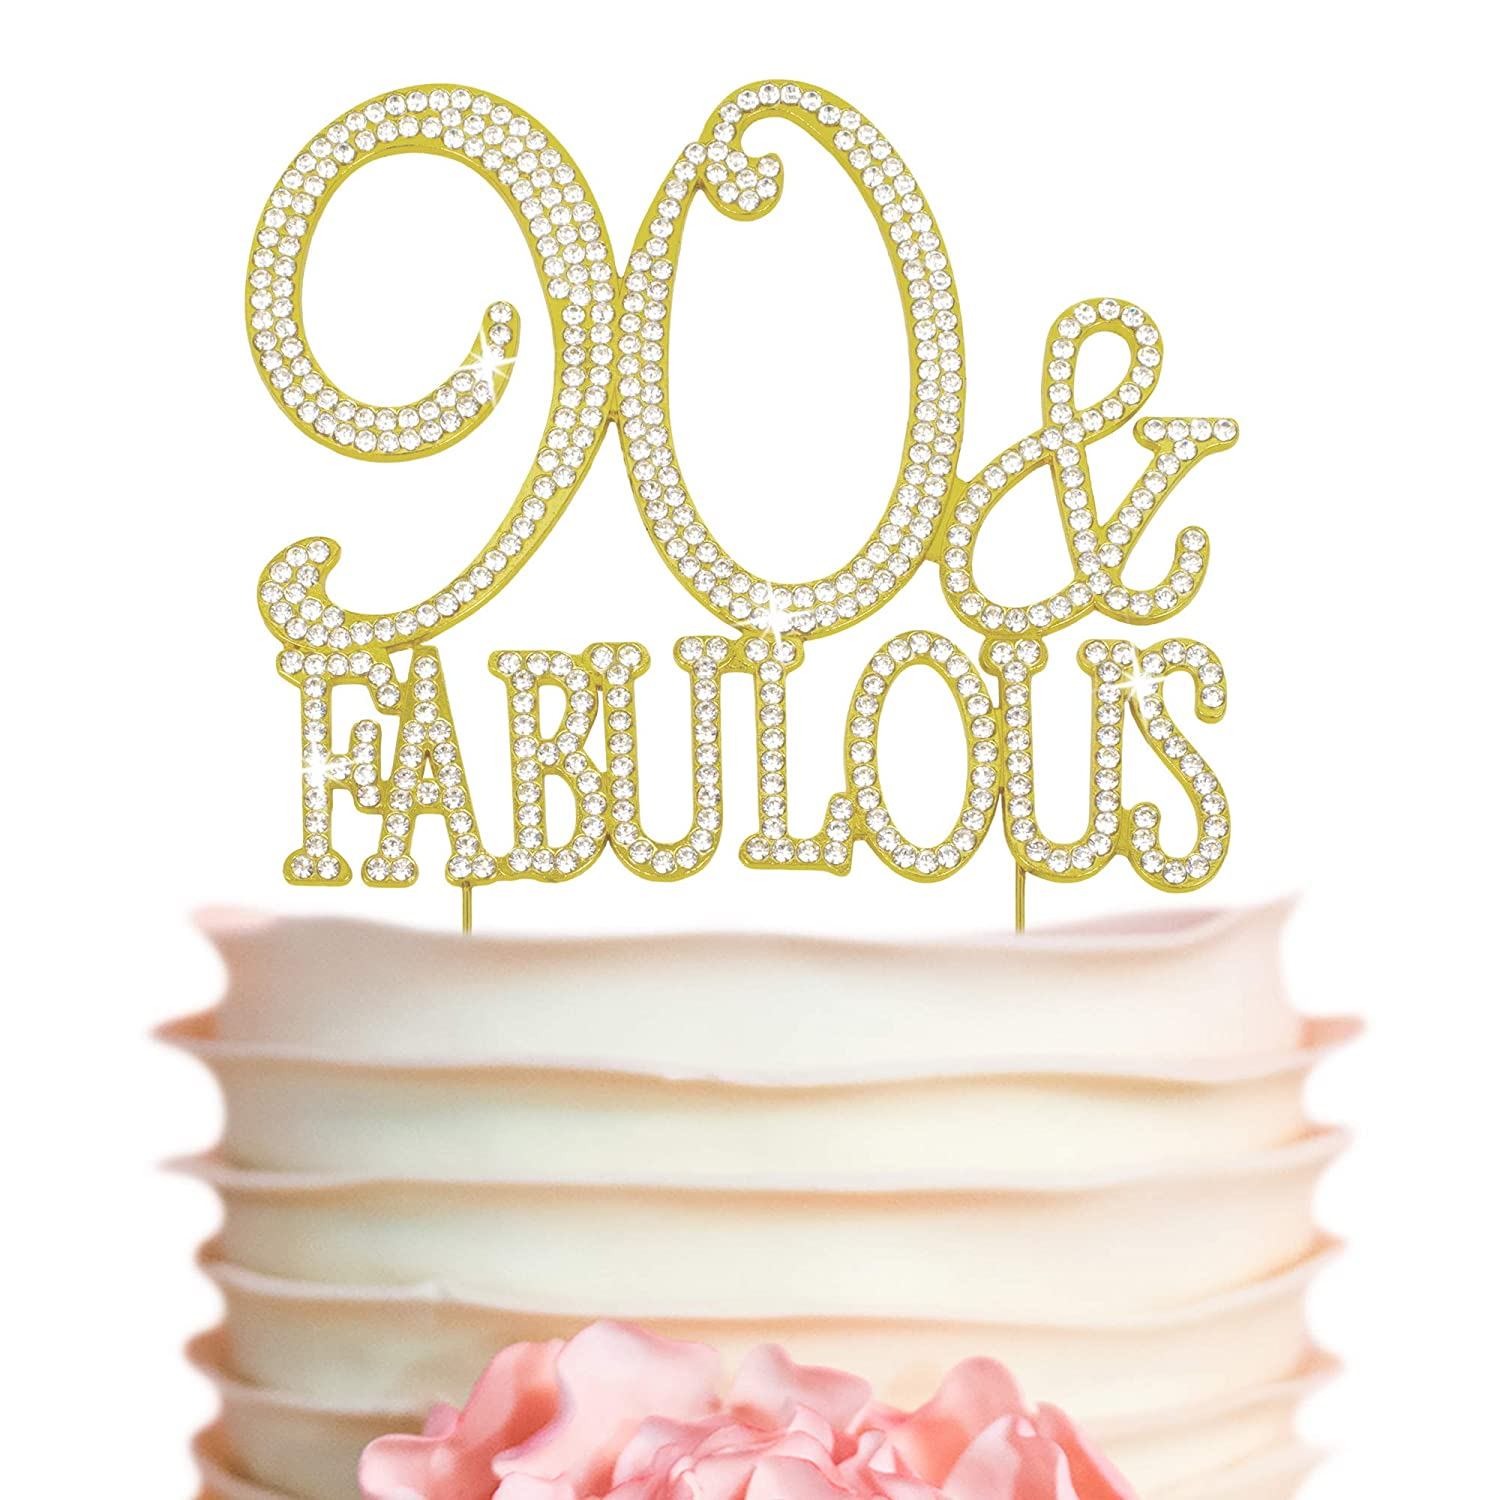 90 Oklahoma City Mall Cake Topper - Premium Gold and specialty shop Metal Bir 90th Fabulous